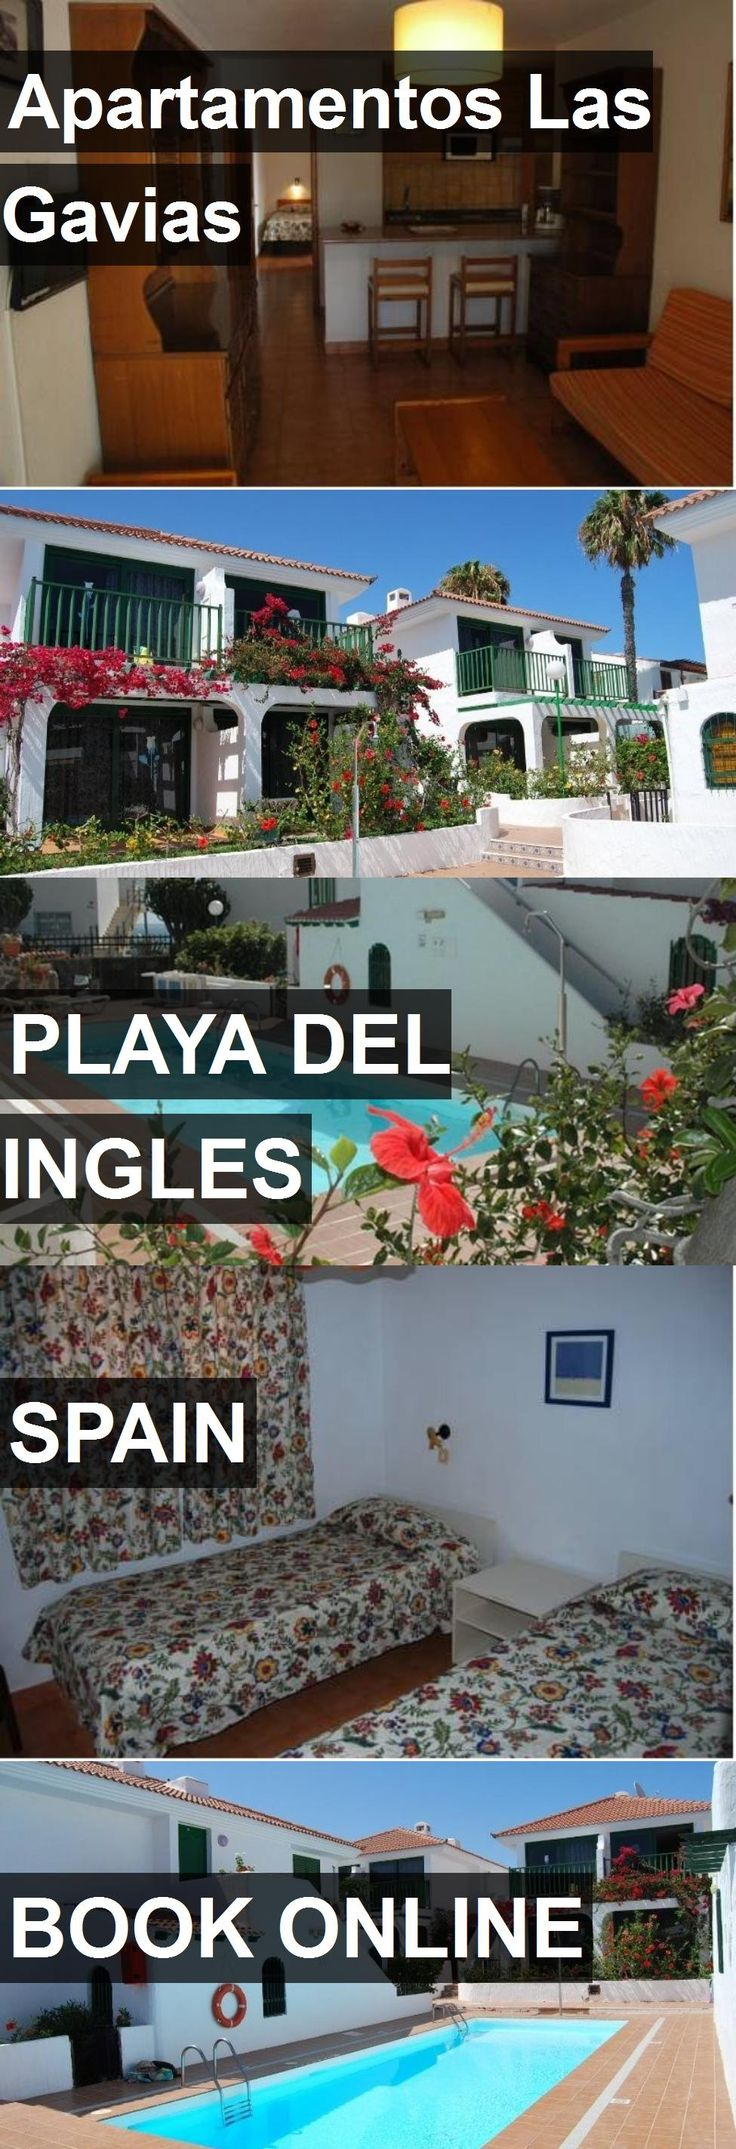 Hotel Apartamentos Las Gavias in Playa del Ingles, Spain. For more information, photos, reviews and best prices please follow the link. #Spain #PlayadelIngles #hotel #travel #vacation